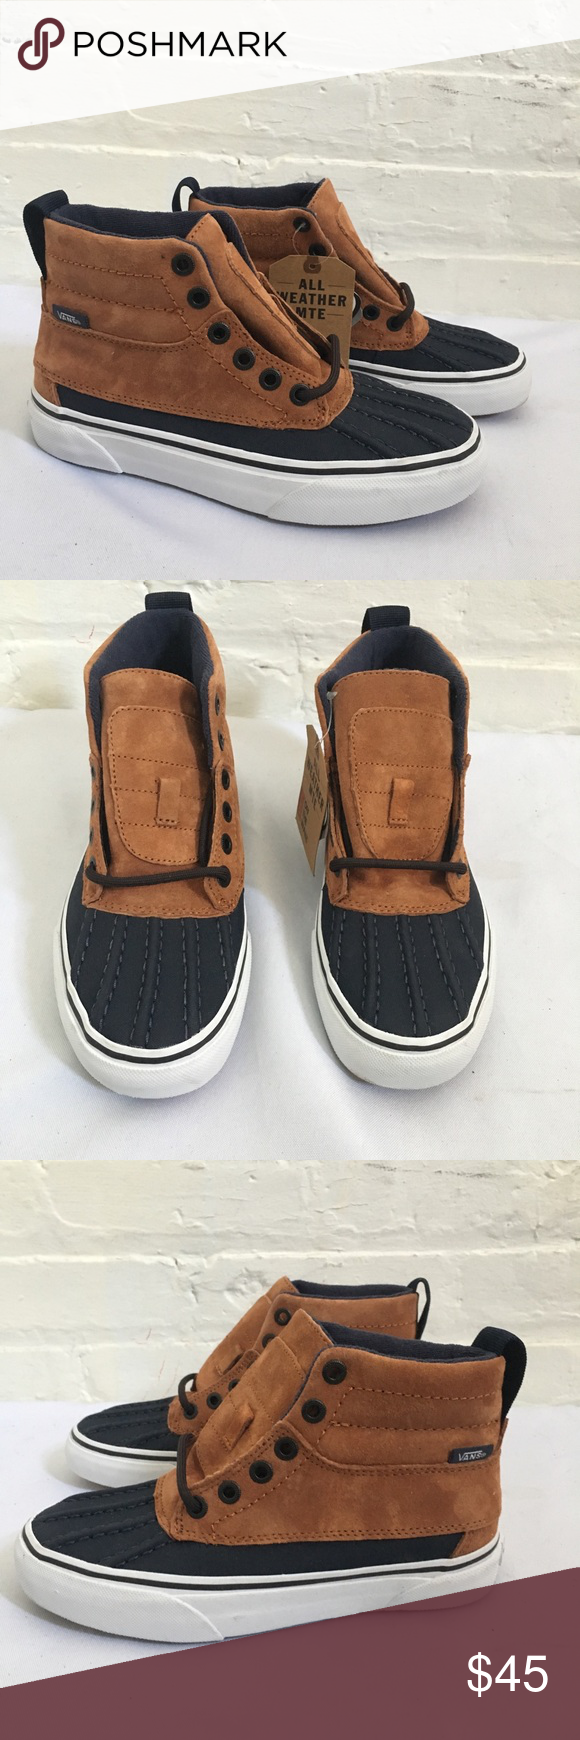 11df957a55c5 Boys Vans Scotch Guard 3M Sk8-Hi Brand new with tags no box never worn vans  sk8-hi waterproof shoes. Laces are tucked inside Vans Shoes Sneakers